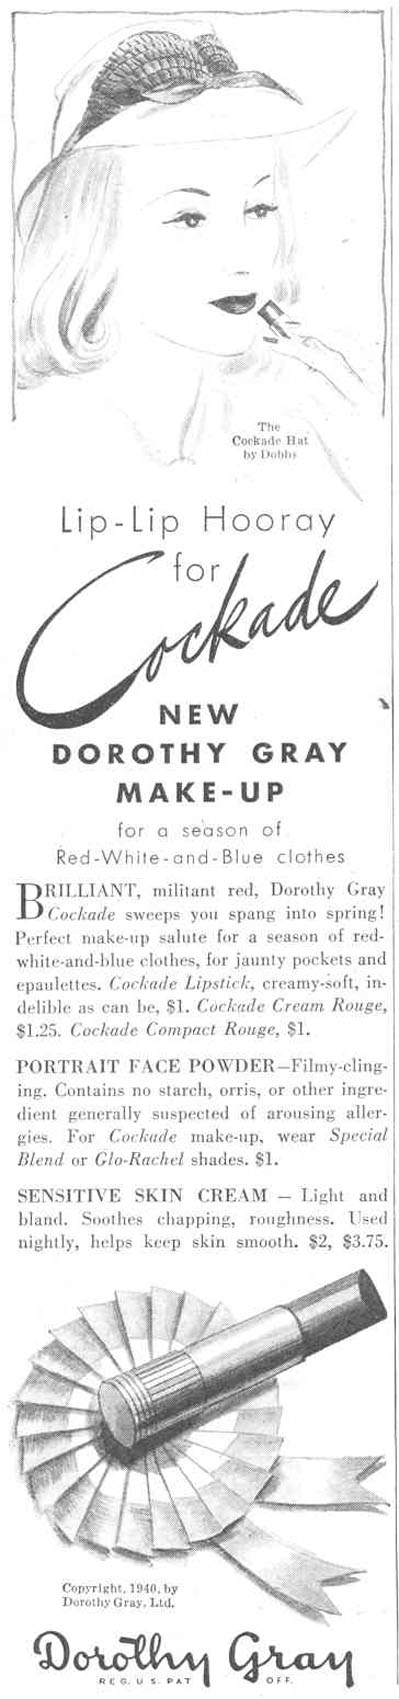 COCKADE MAKE-UP GOOD HOUSEKEEPING 03/01/1940 p. 76